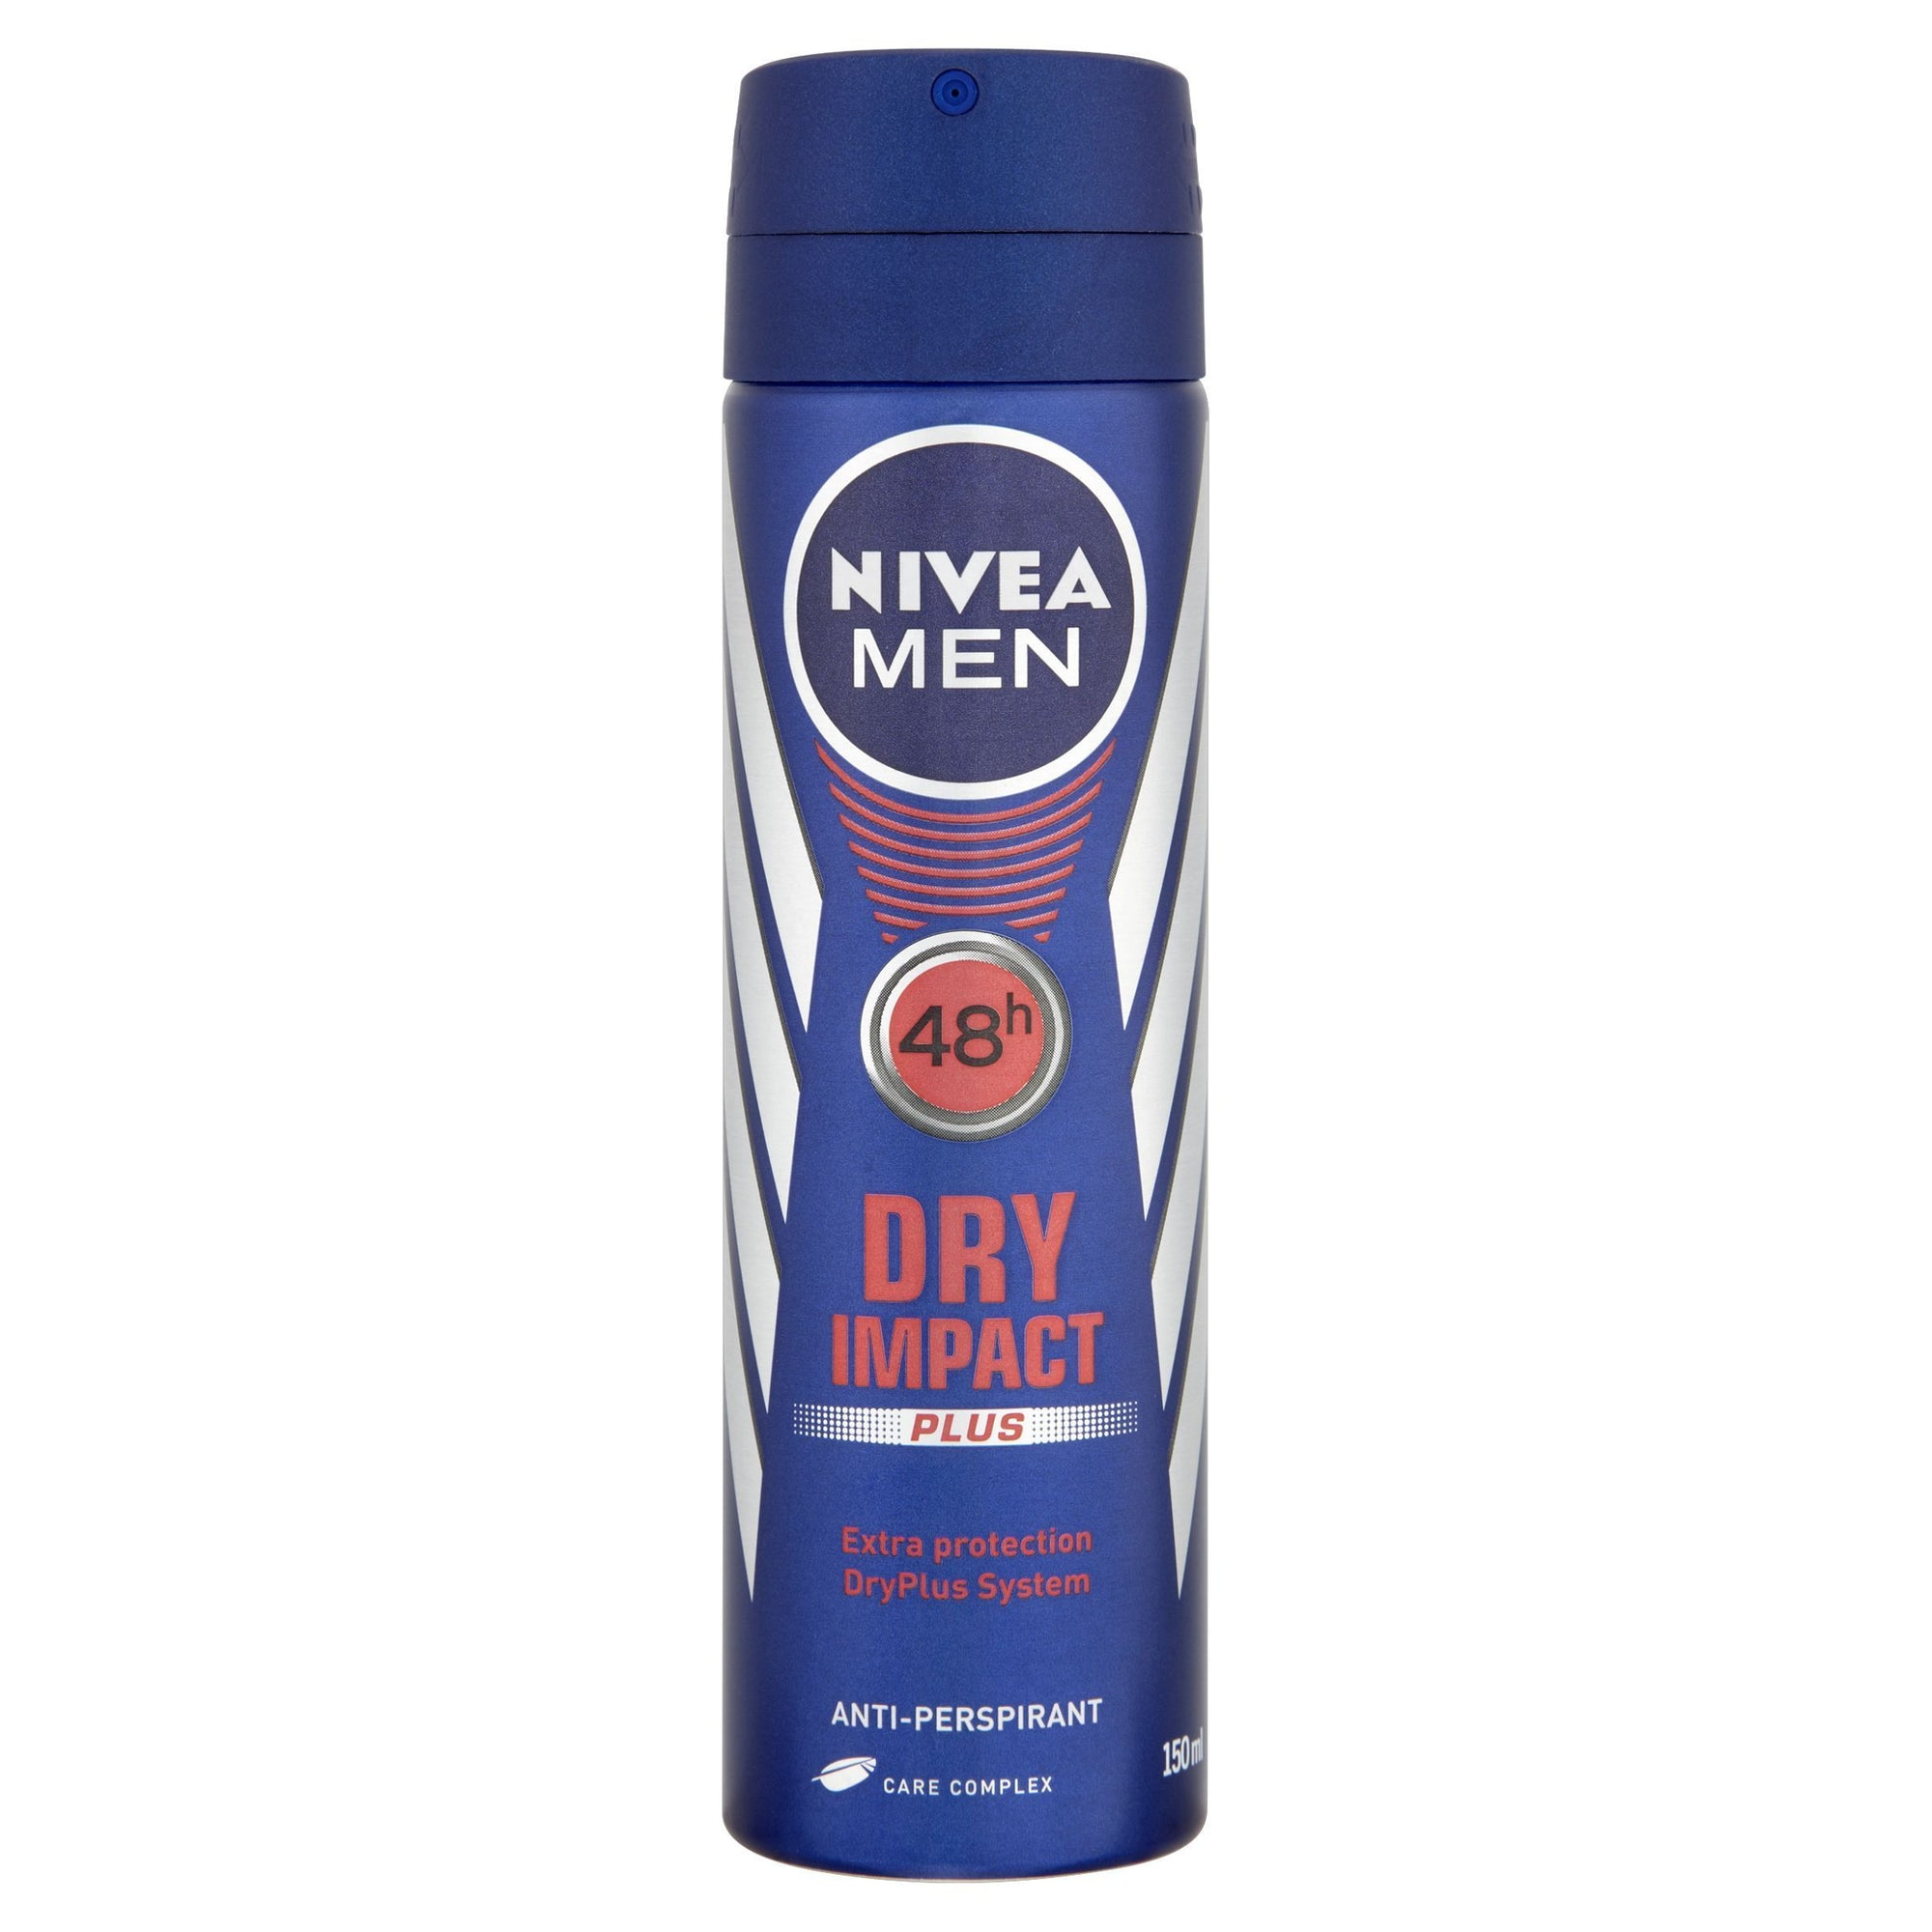 Nivea Men Dry Impact Plus 48h Anti-Perspirant 150ml - Pack of 6 (Sty-NIVE109MEN)